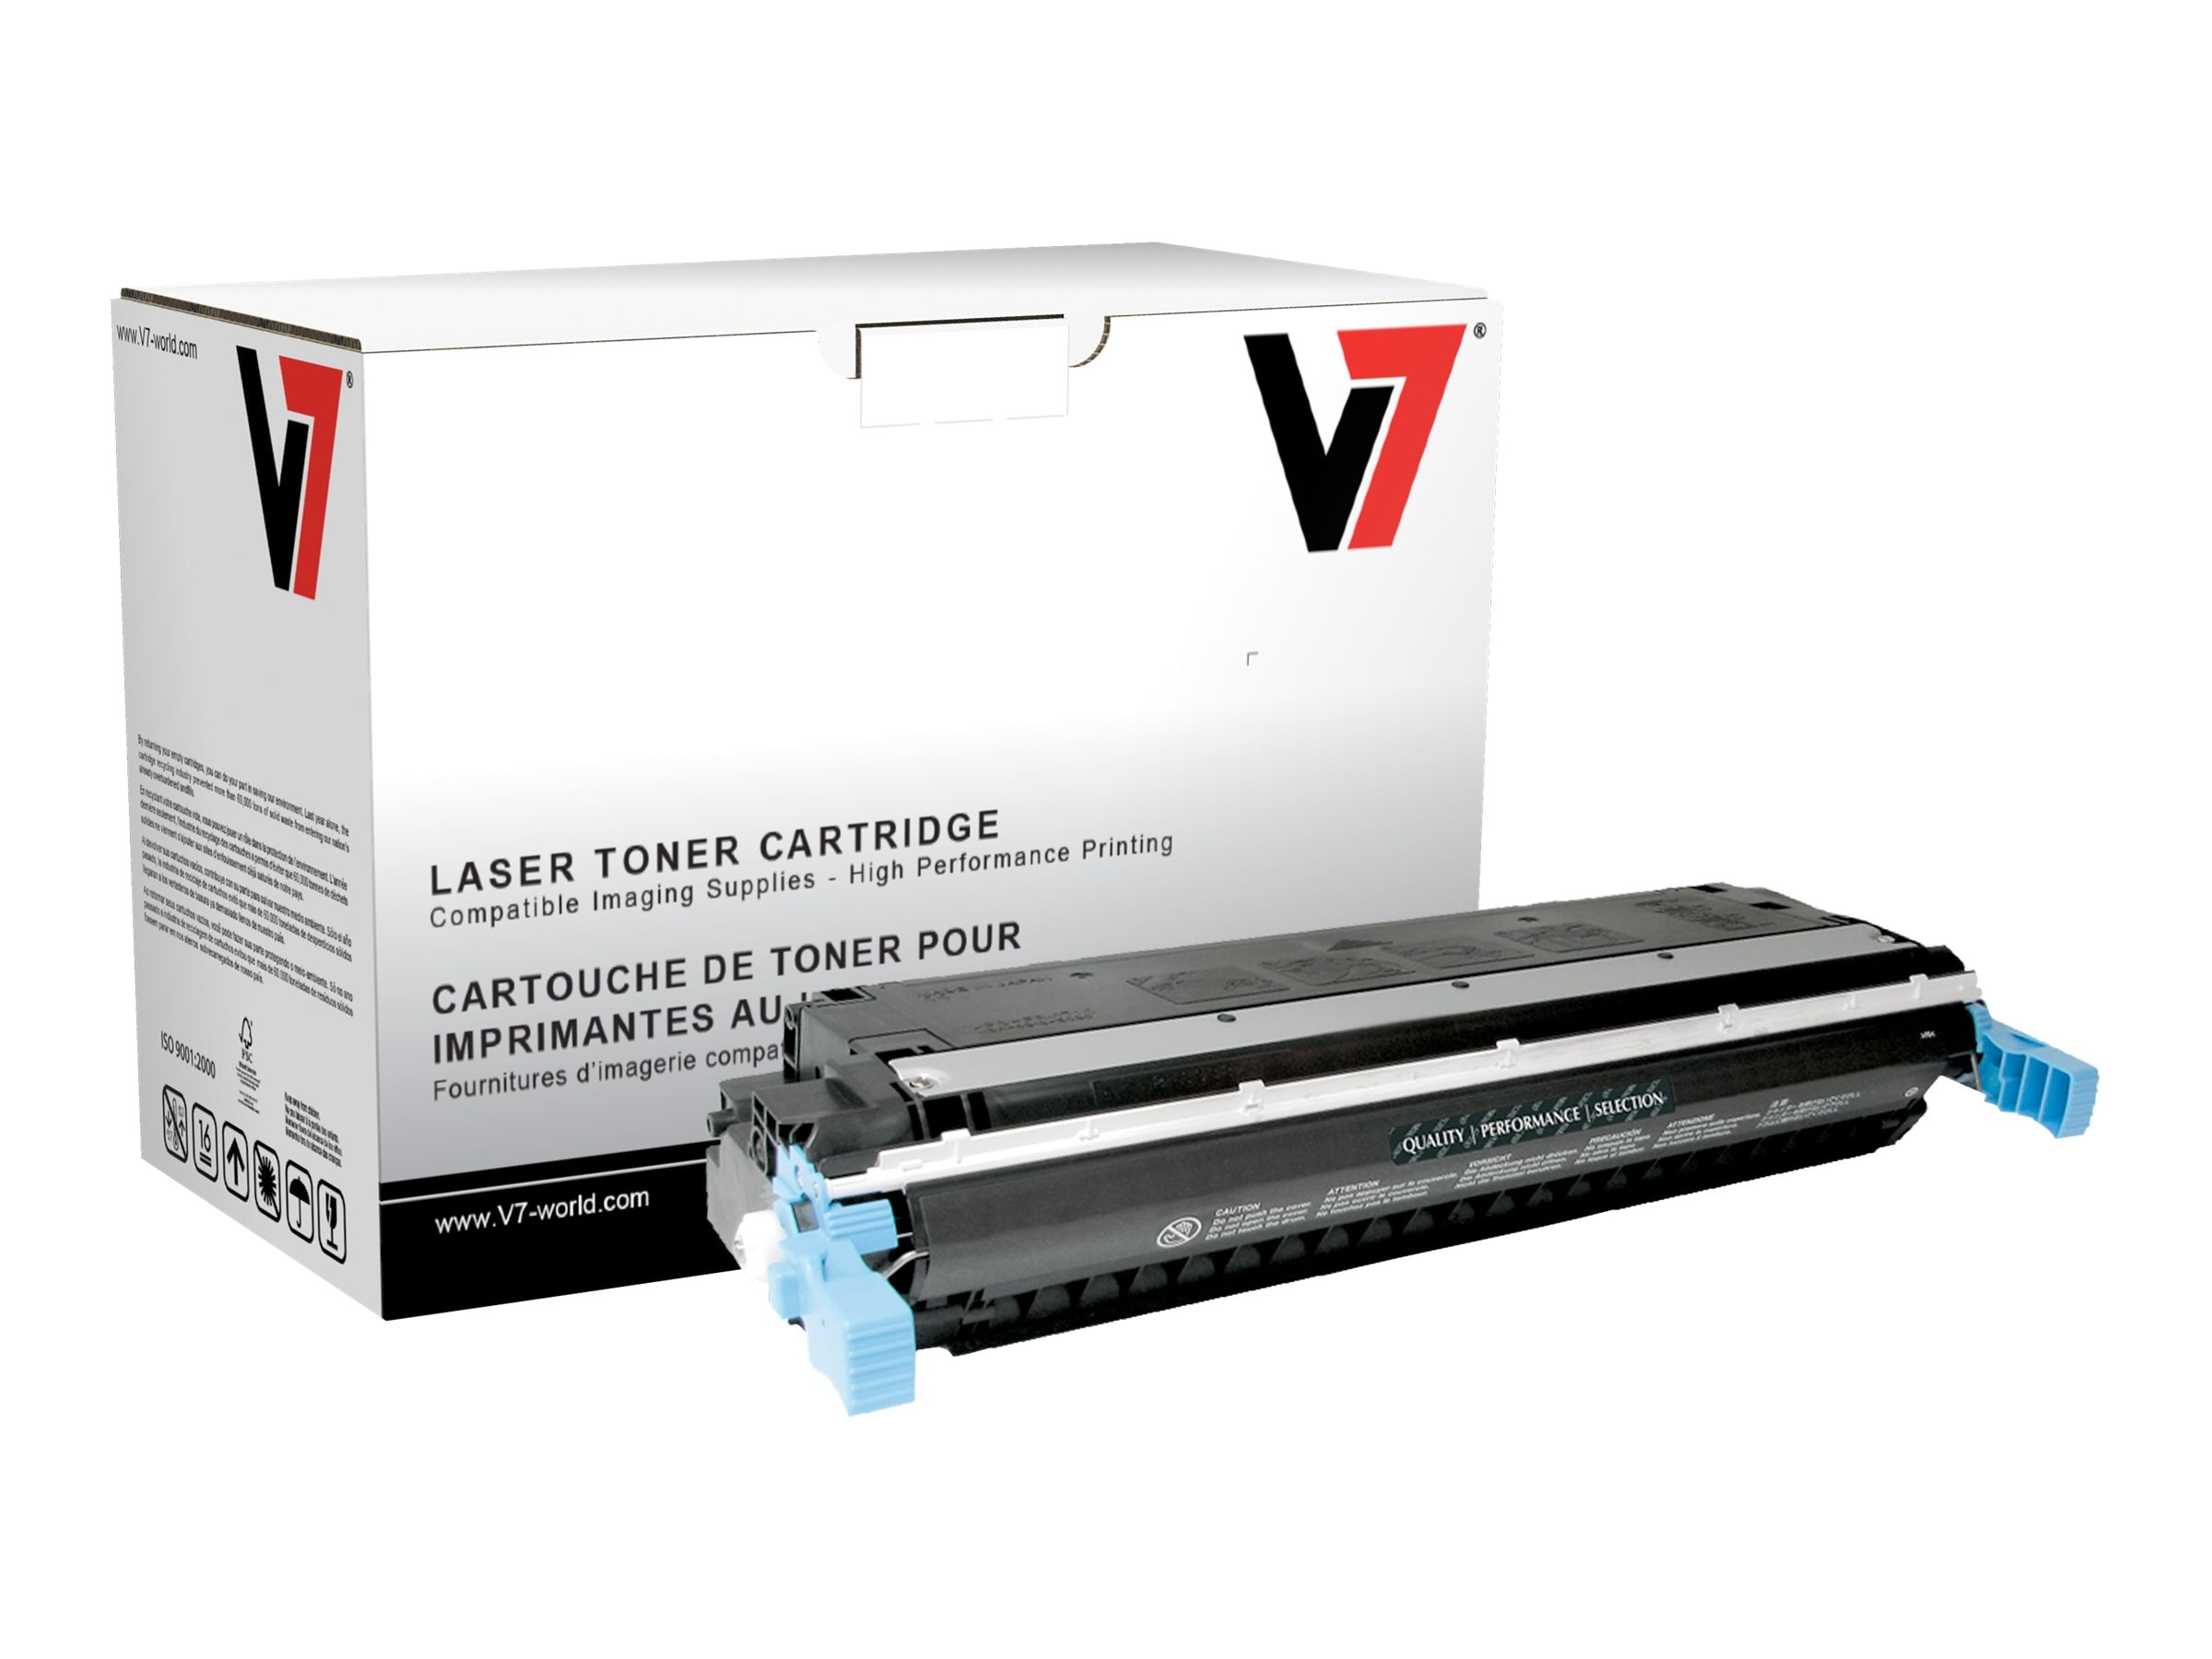 V7 C9730A Black Toner Cartridge for HP LaserJet 5500 (TAA Compliant), THK29730A